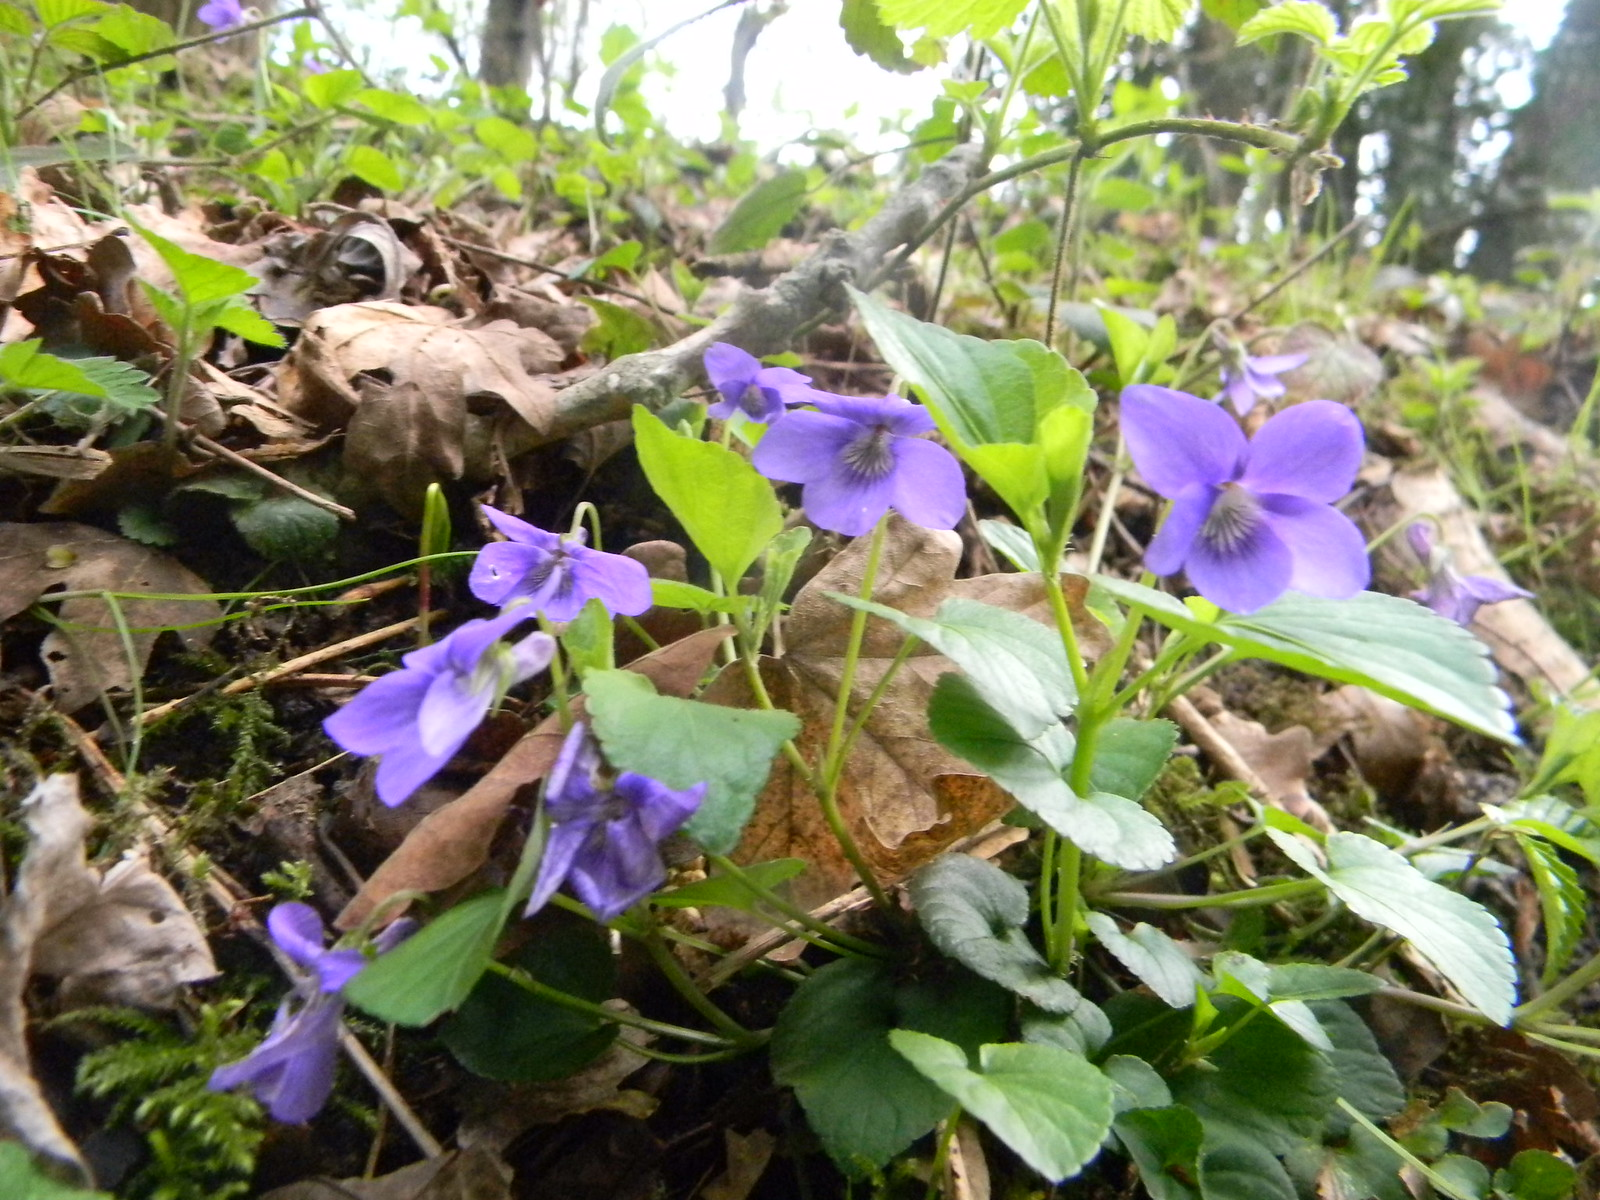 Violets Ockley to Warnham